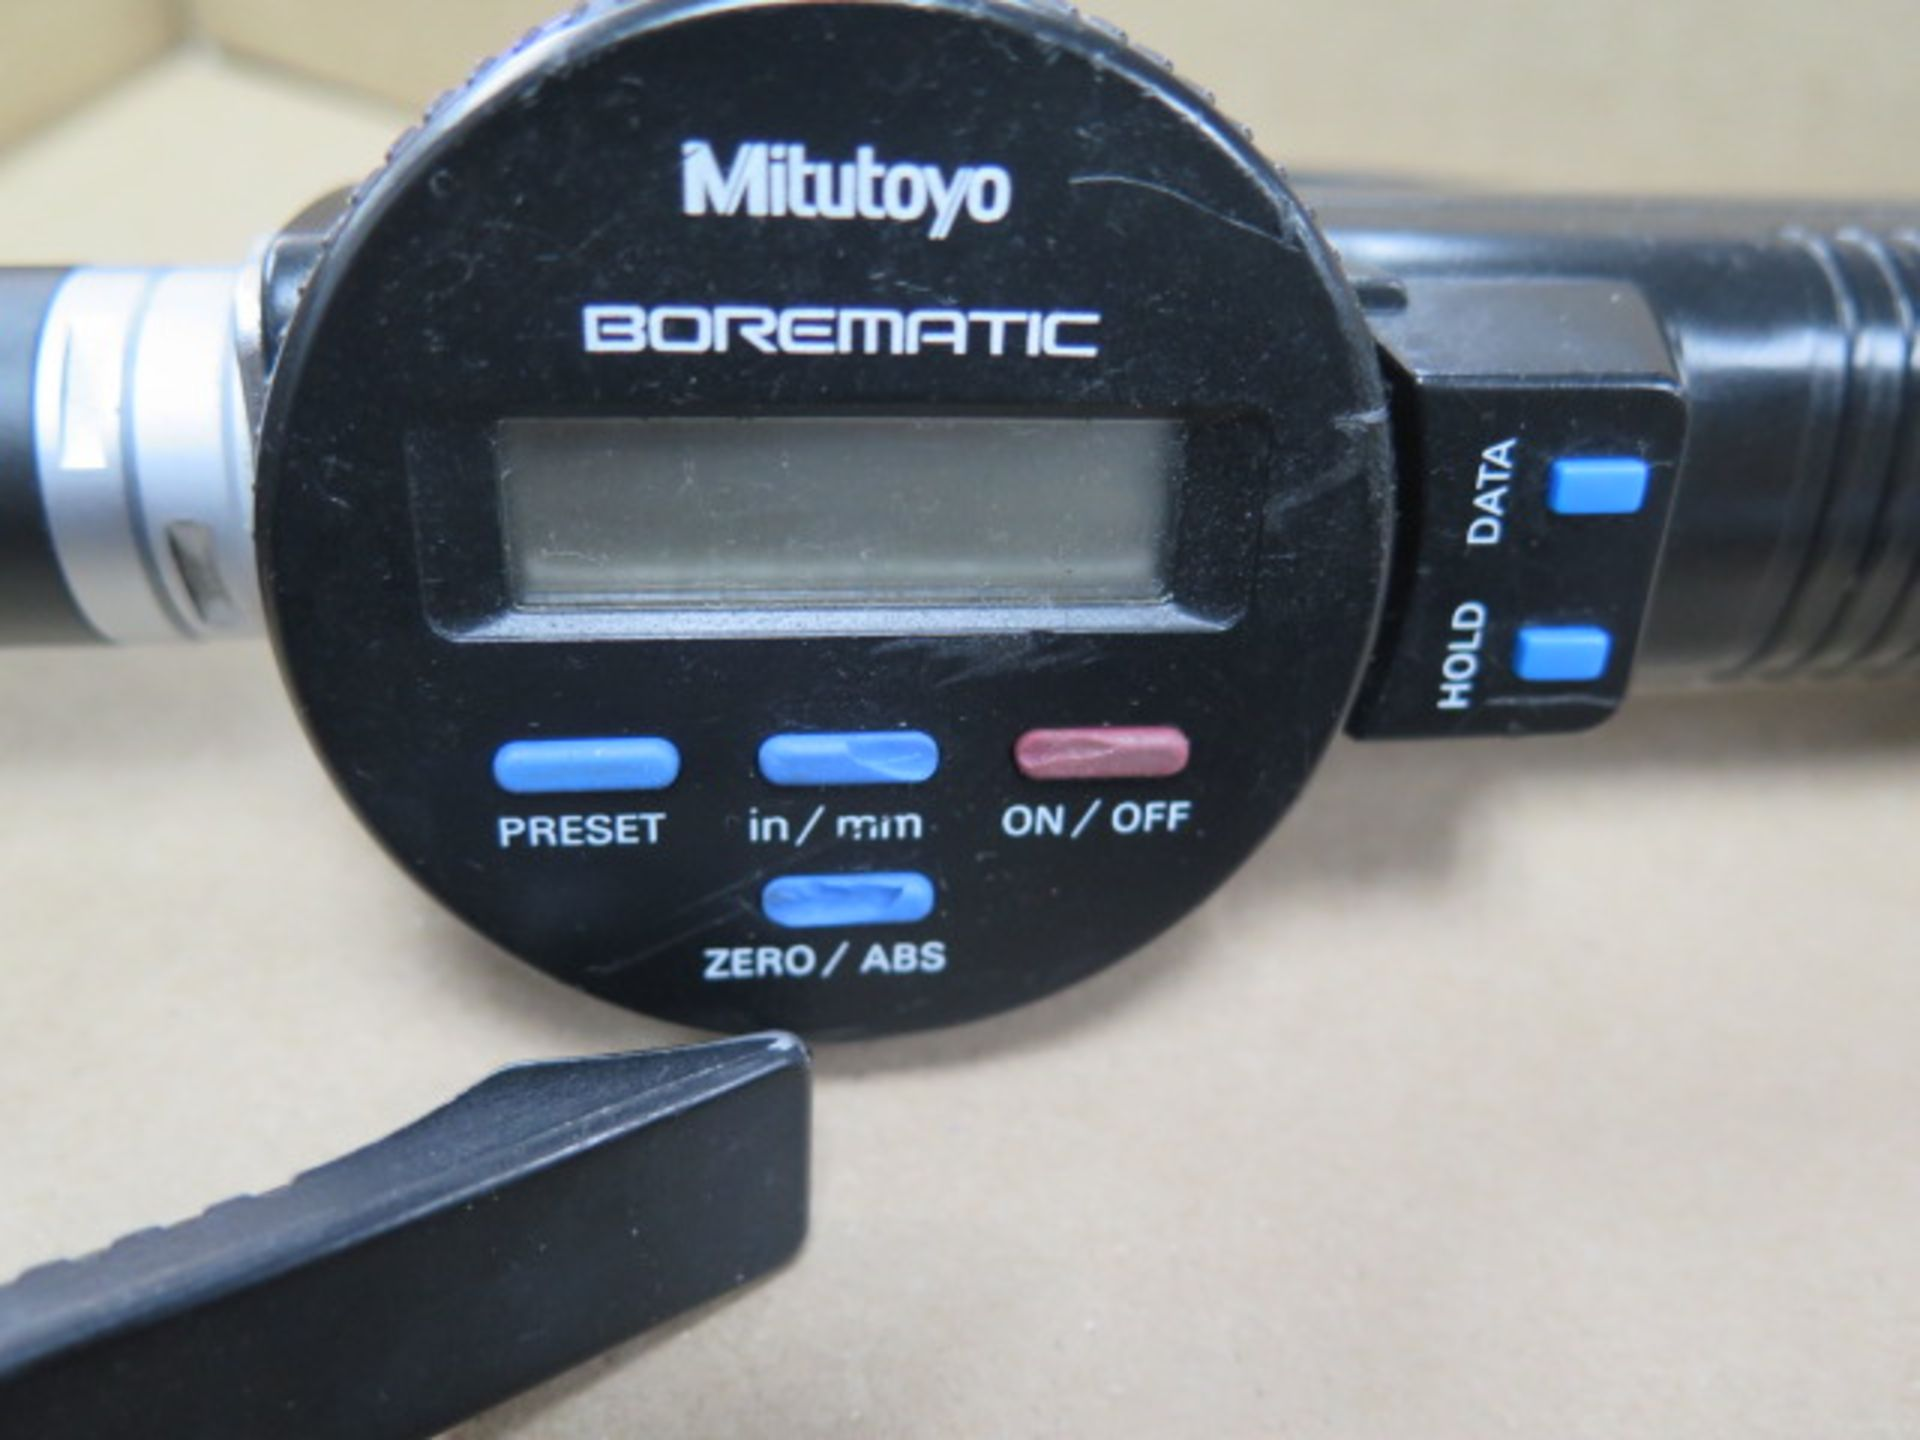 """Mitutoyo 1.6""""-2.0"""" and 1.2""""-1.6"""" Digital Bore Mics w/ Standards (SOLD AS-IS - NO WARRANTY) - Image 4 of 9"""